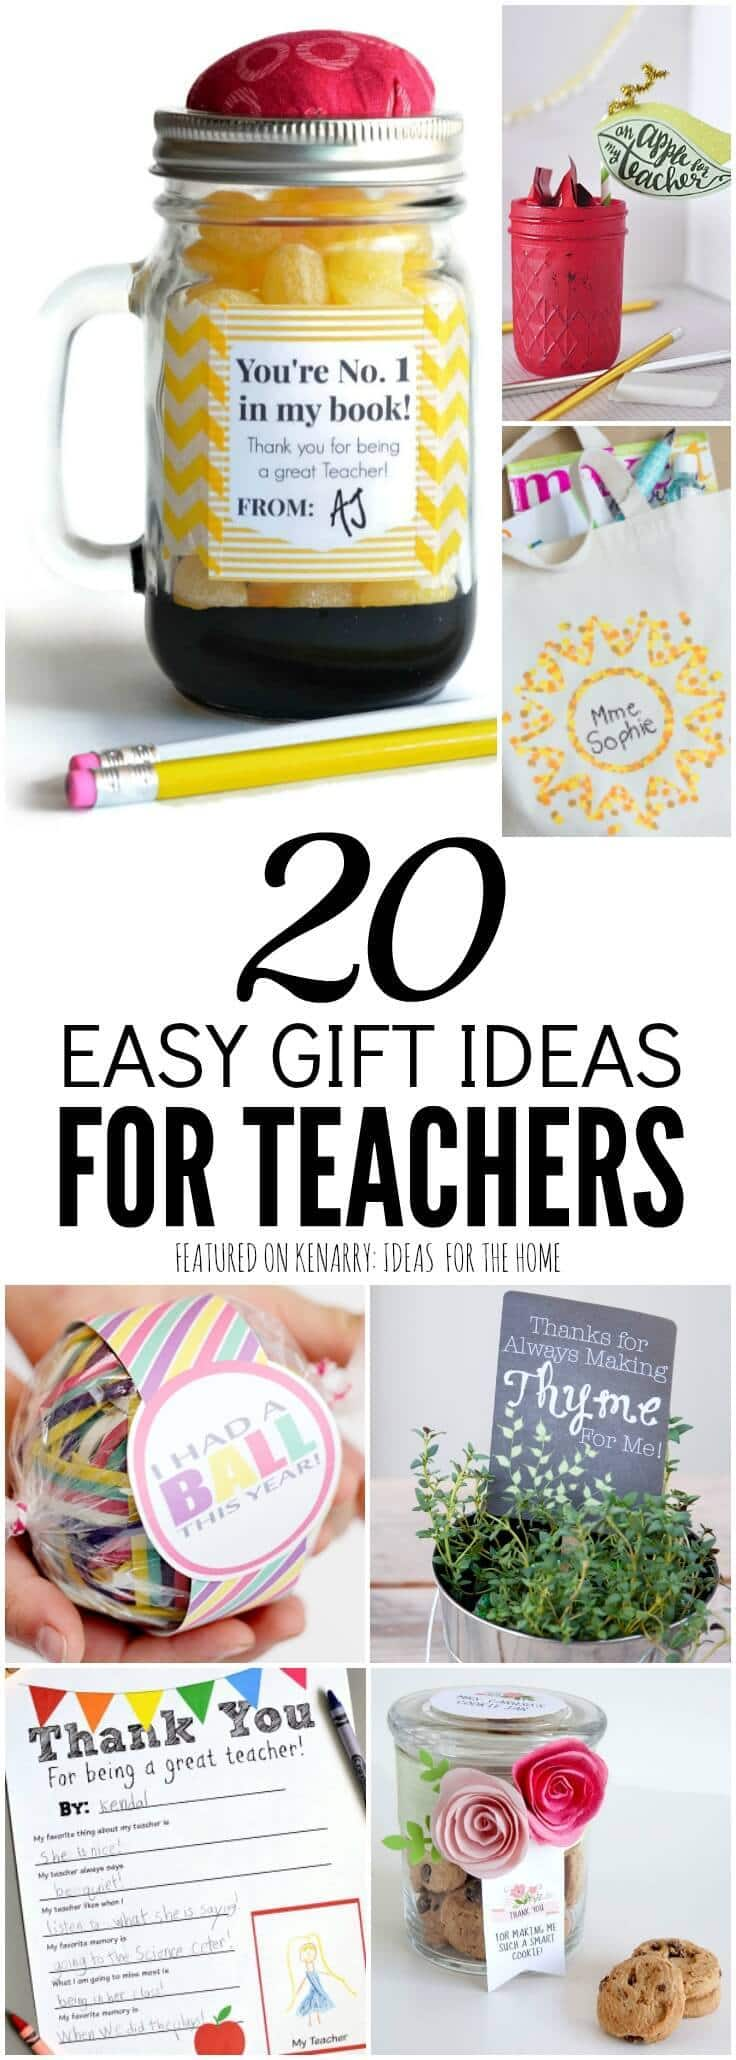 These crafts and free printables are clever and unique teacher gift ideas for Teacher Appreciation Week, back to school, end of the school year, birthdays or Christmas.